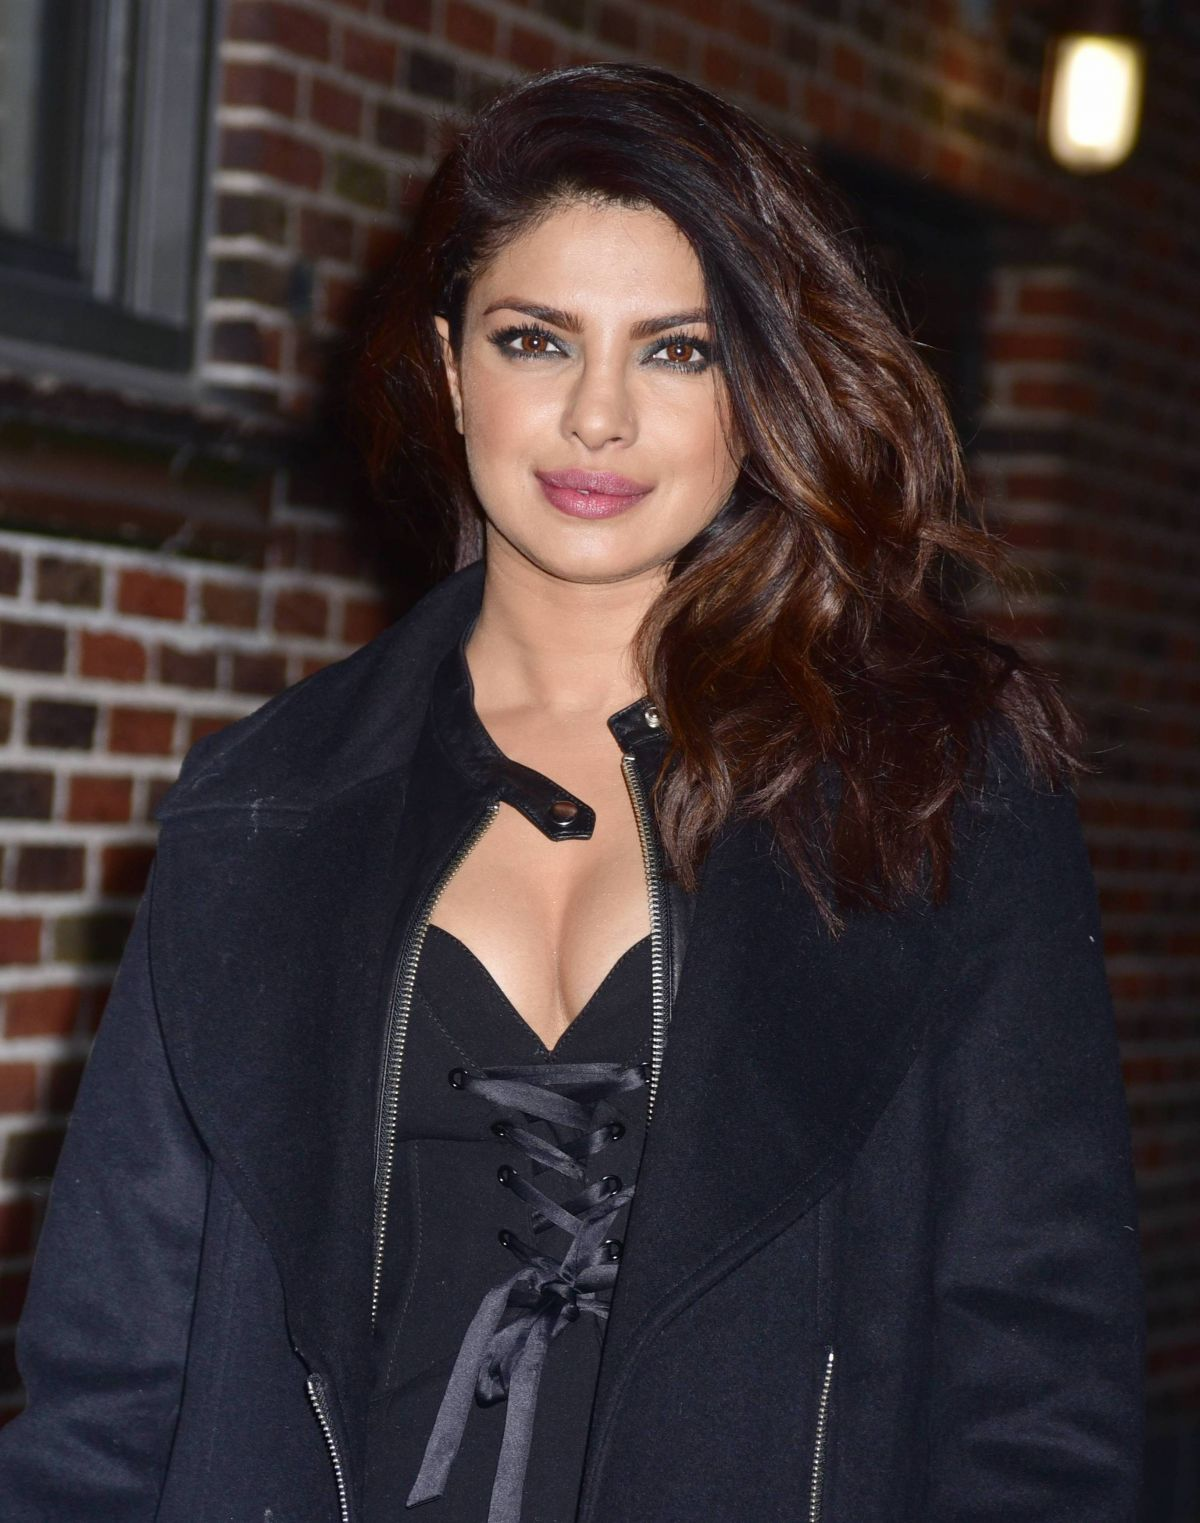 priyanka chopra - photo #35